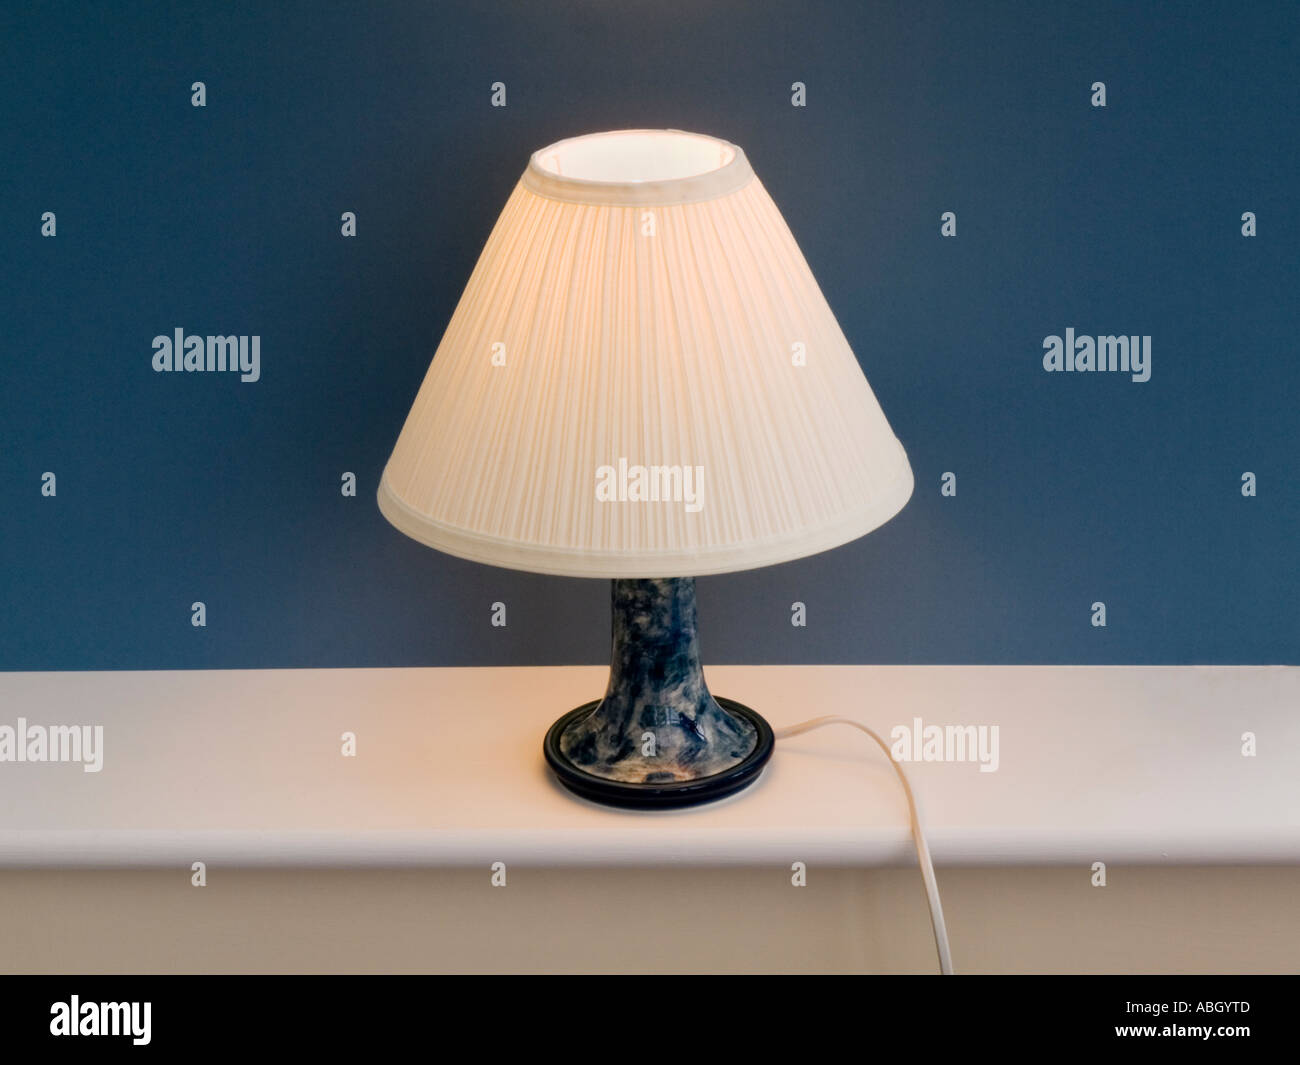 Table Lamp Lit Up With Cream Lamp Shade On White Windowsill With